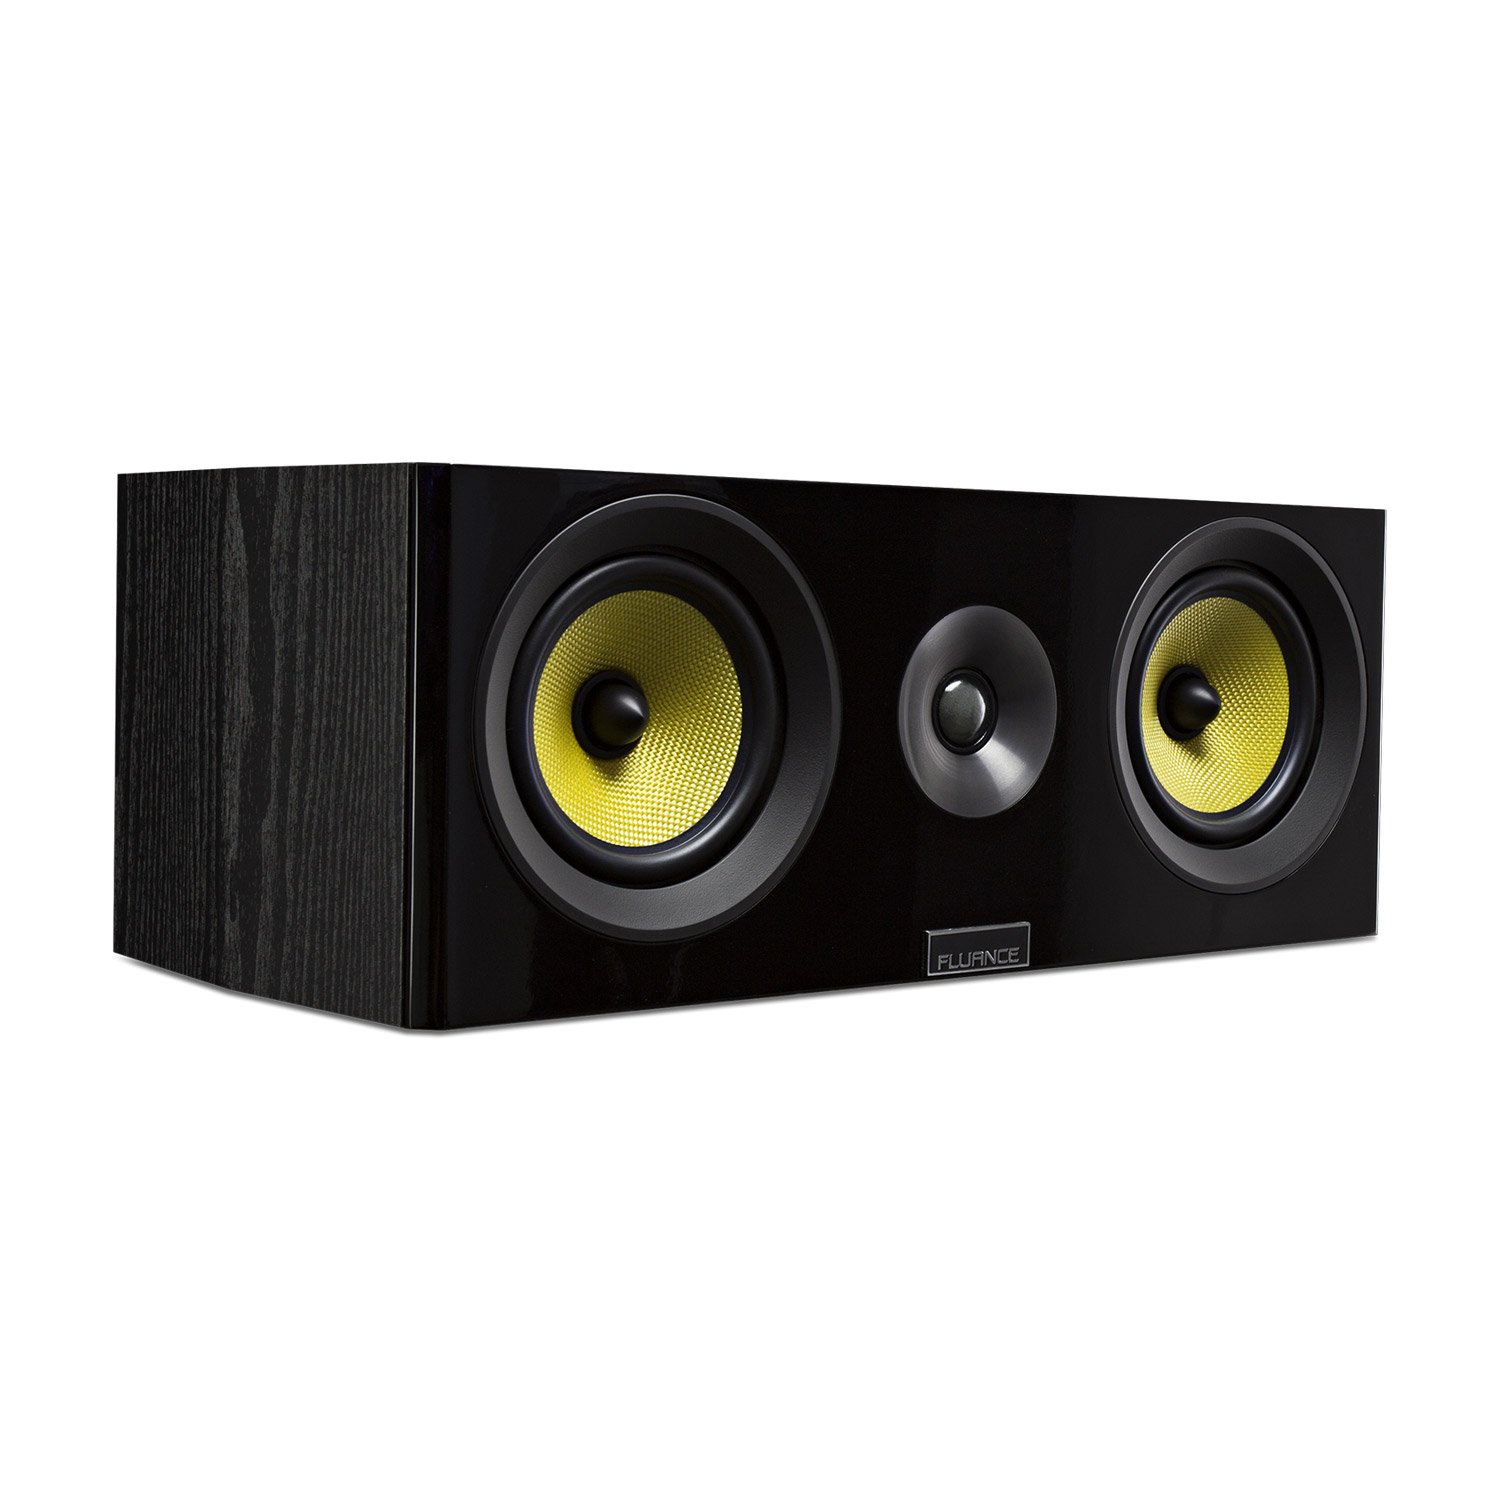 Signature HiFi Two-Way Center Channel Speaker